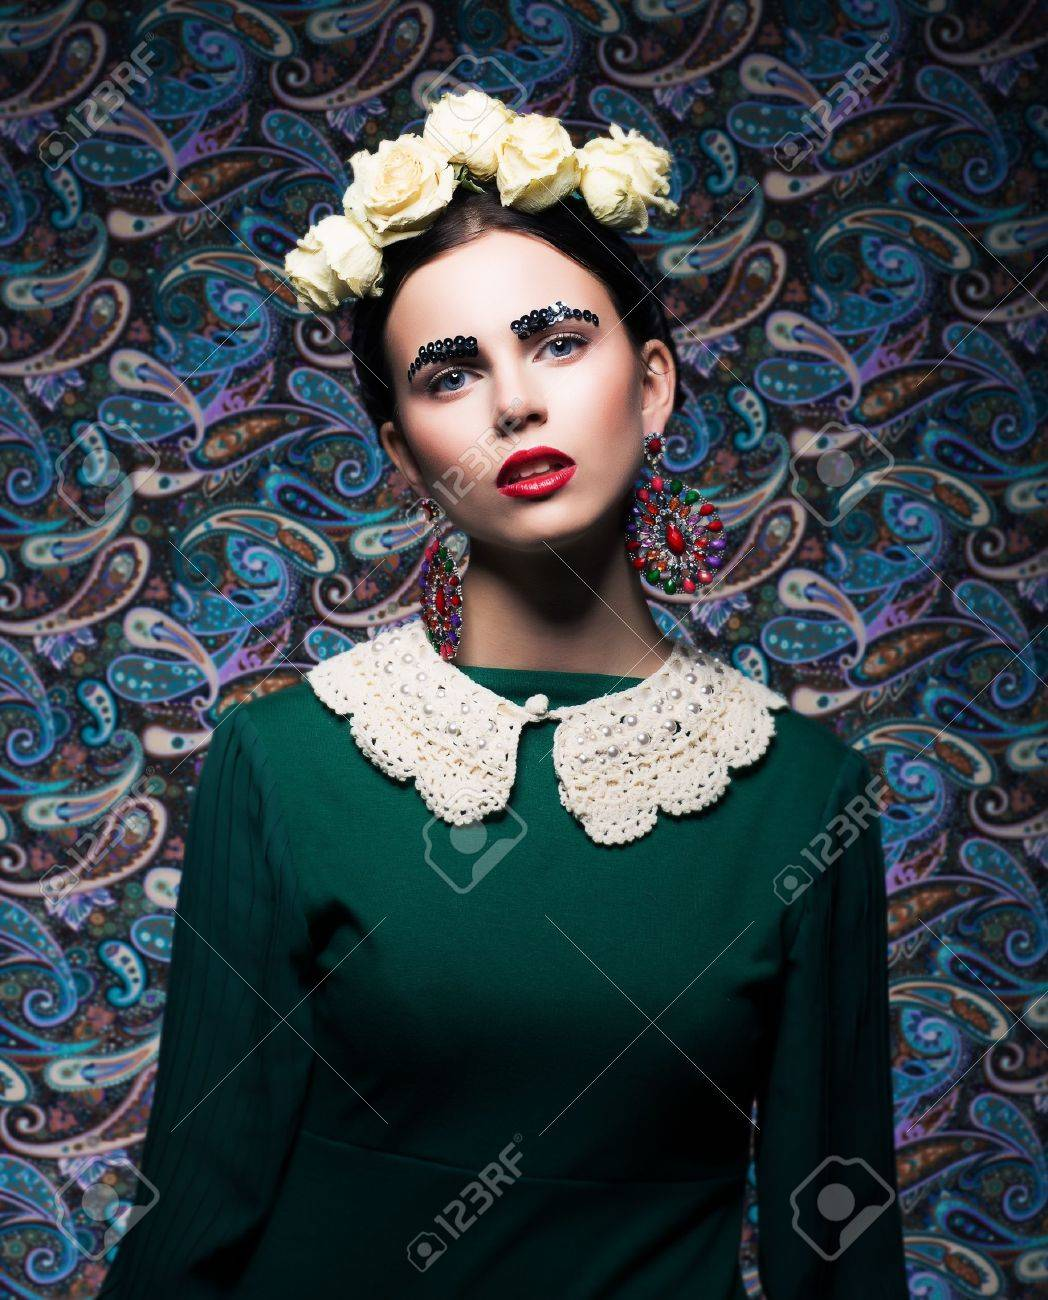 Elegant Lady in Green Dress and Roses  Retro Style Stock Photo - 18299650